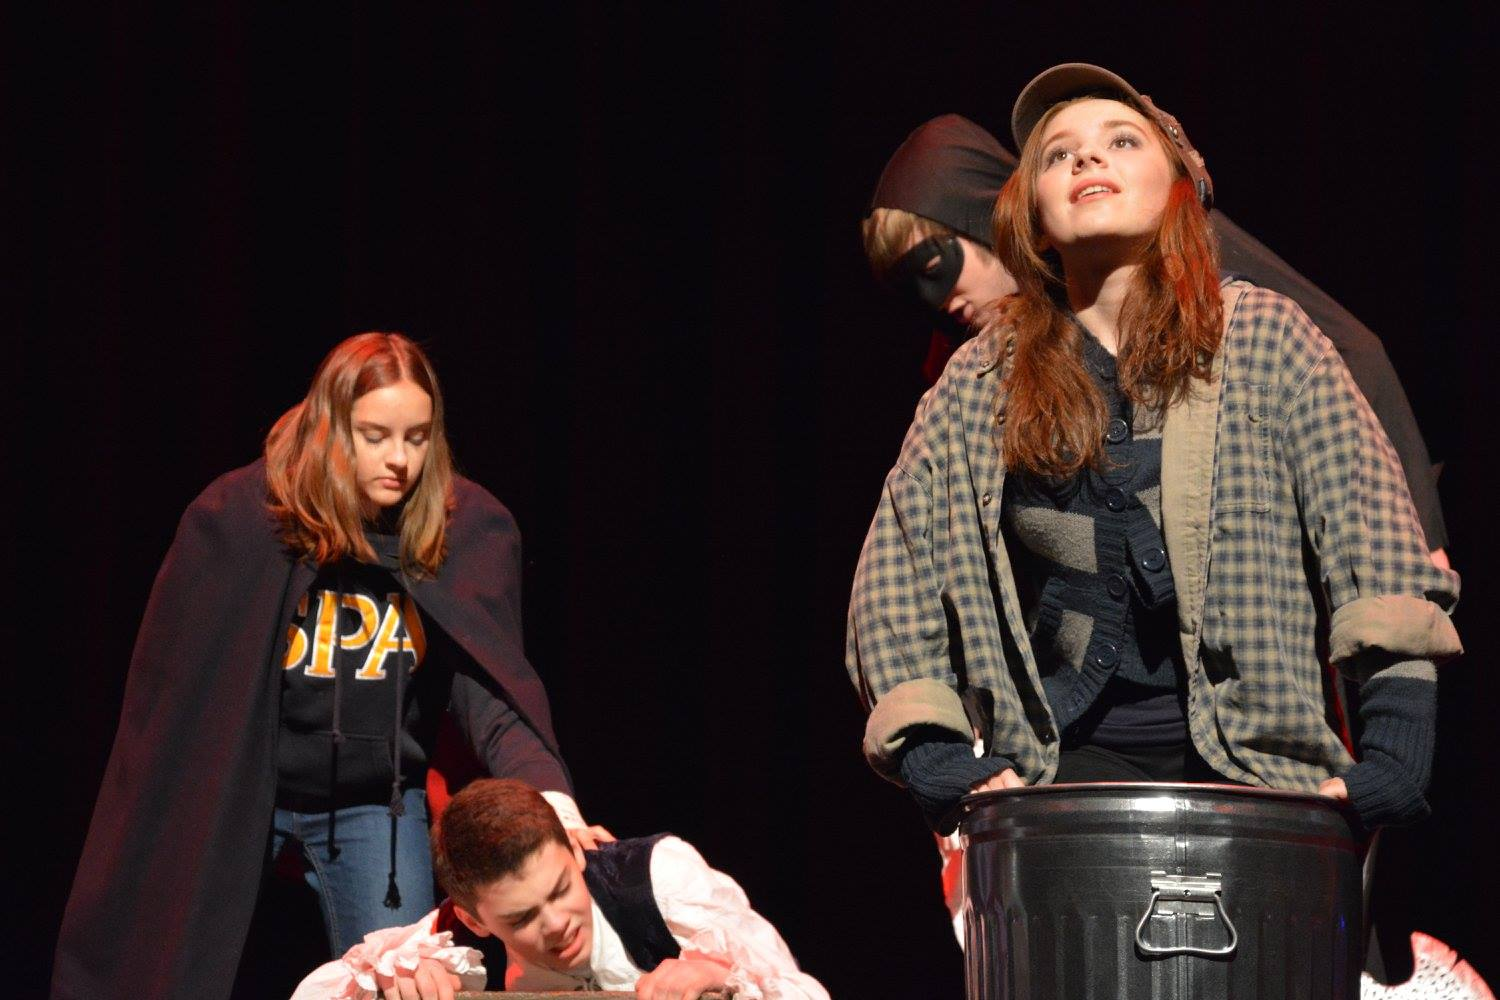 Junior+Tess+Hick+feeds+9th+grader+Henry+Vliestra+his+line+as+his+character+desperately+does+not+know+how+he+found+himself+stuck+inside+a+play.+Senior+Bailey+Troth+and+sophomore+Chloe+Morse+both+portray+actors+in+this+Shakespeare+spoof.+